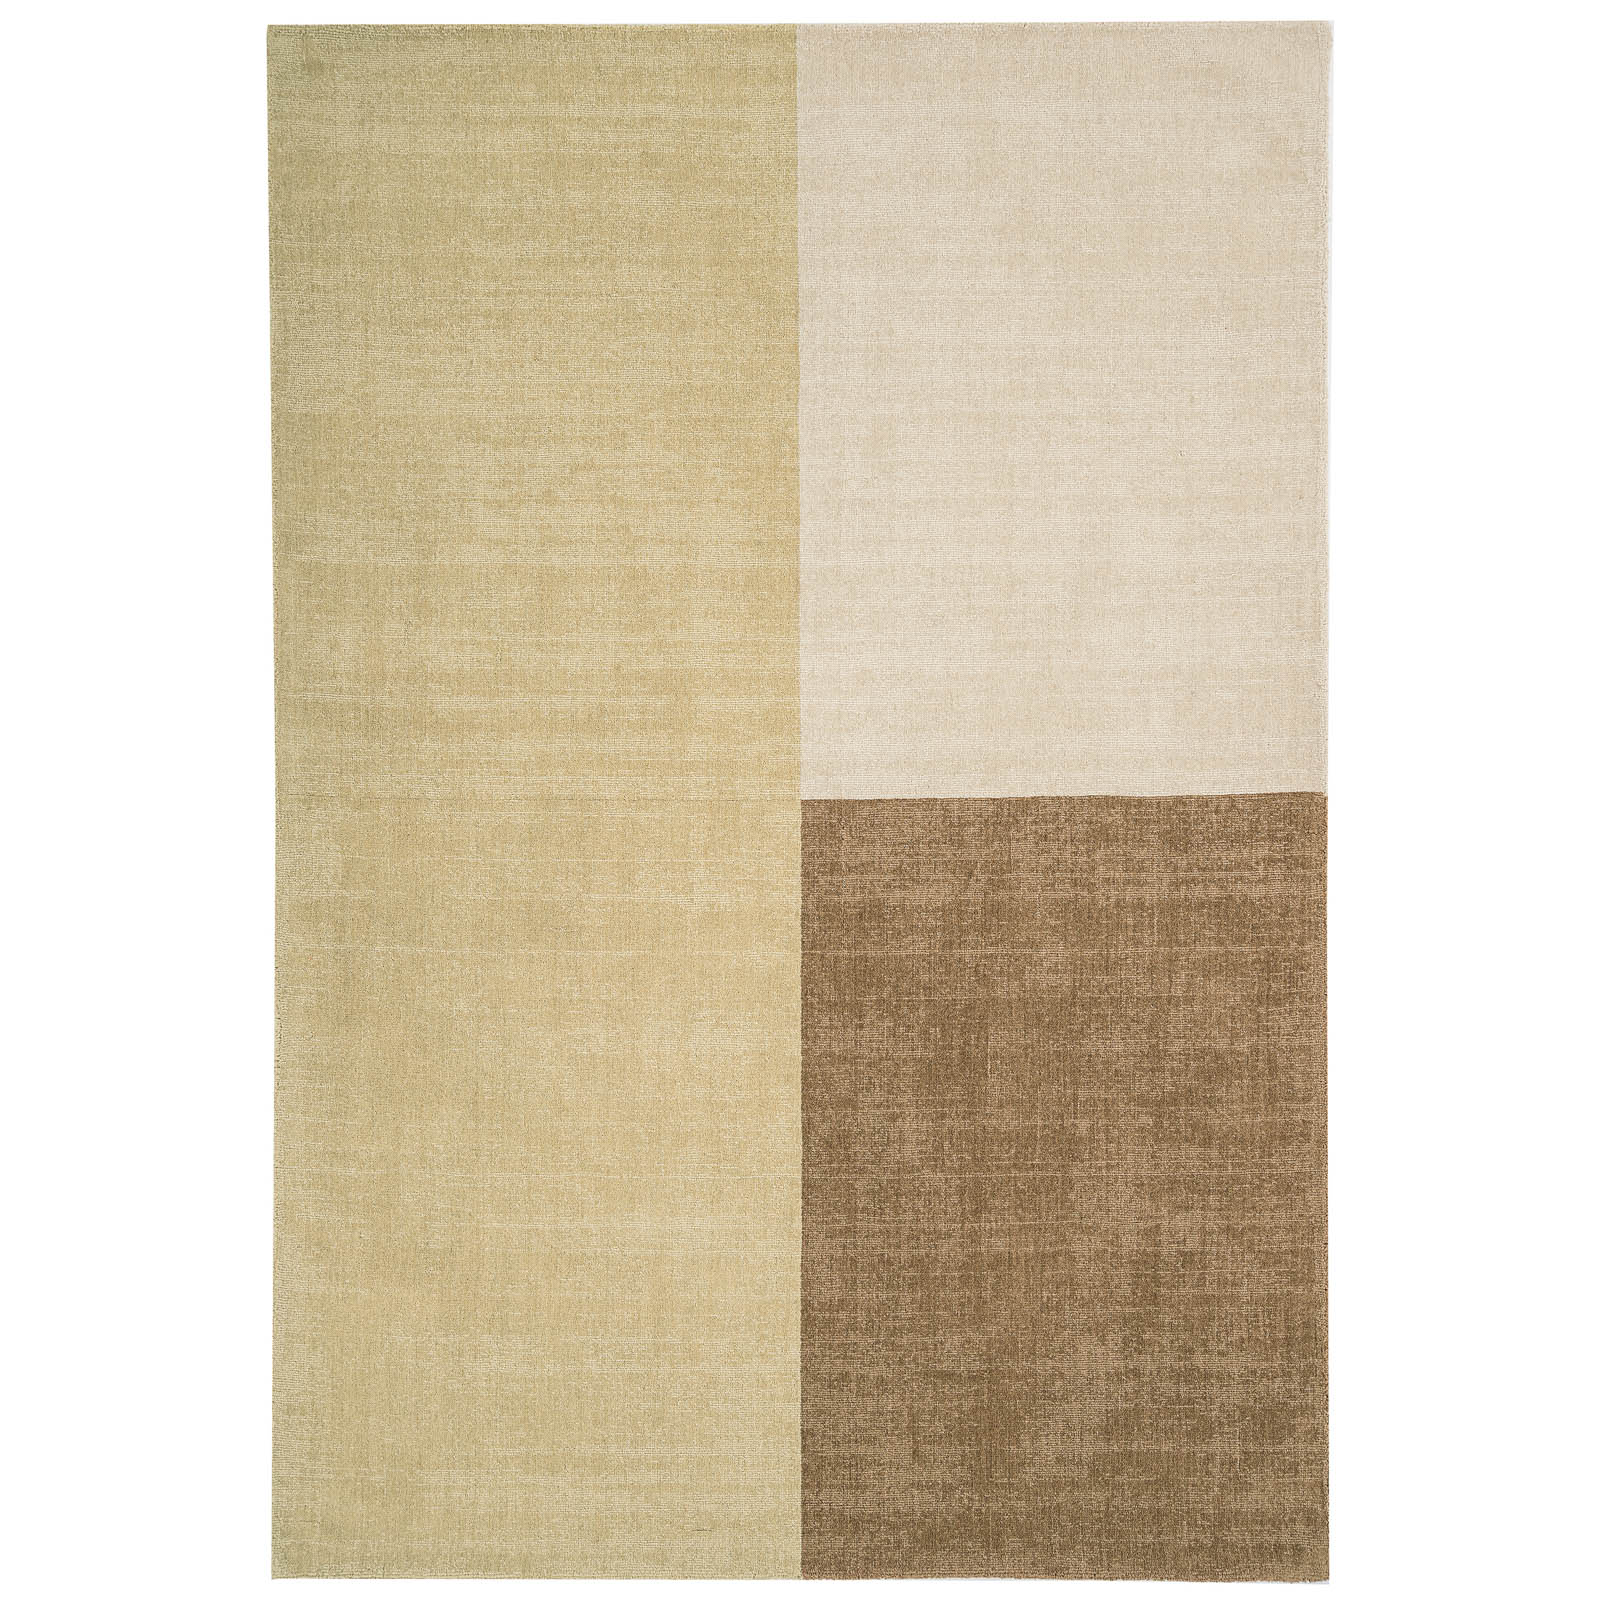 Blox Rugs in Natural